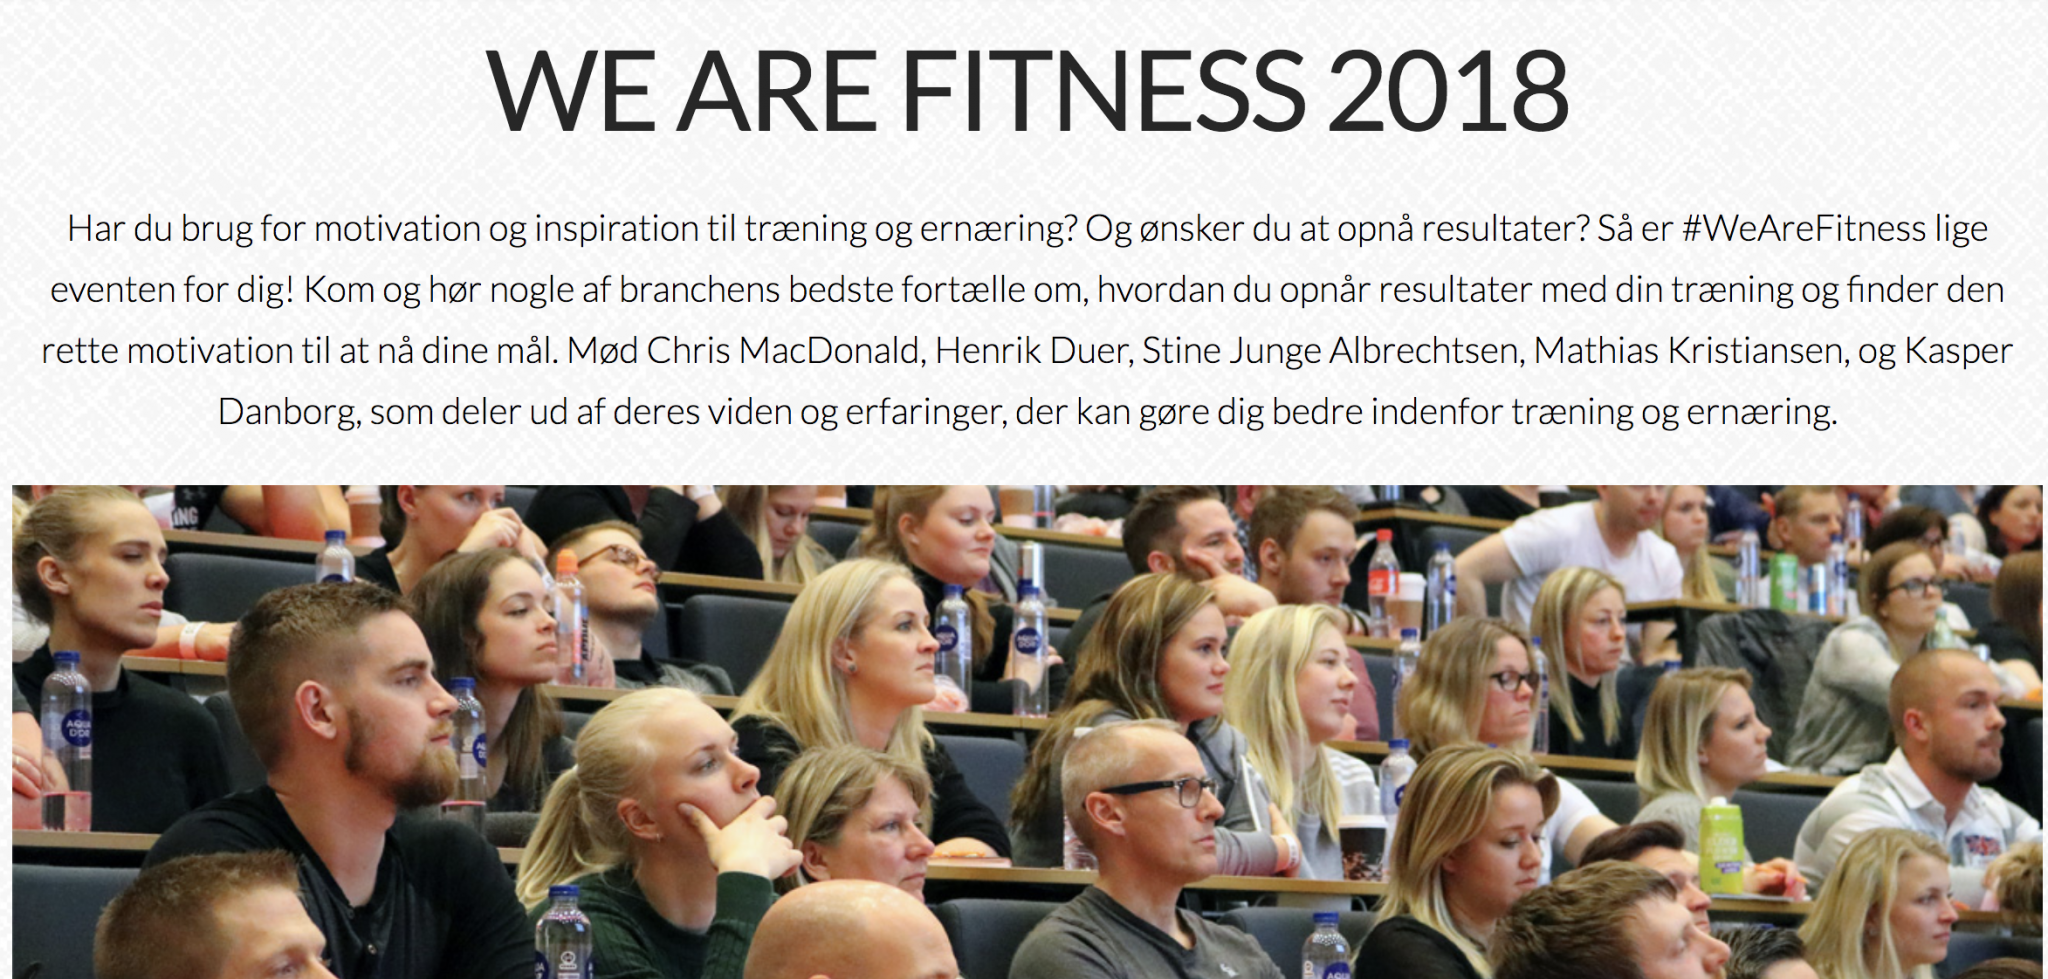 Image of   We Are Fitness 2018 handouts